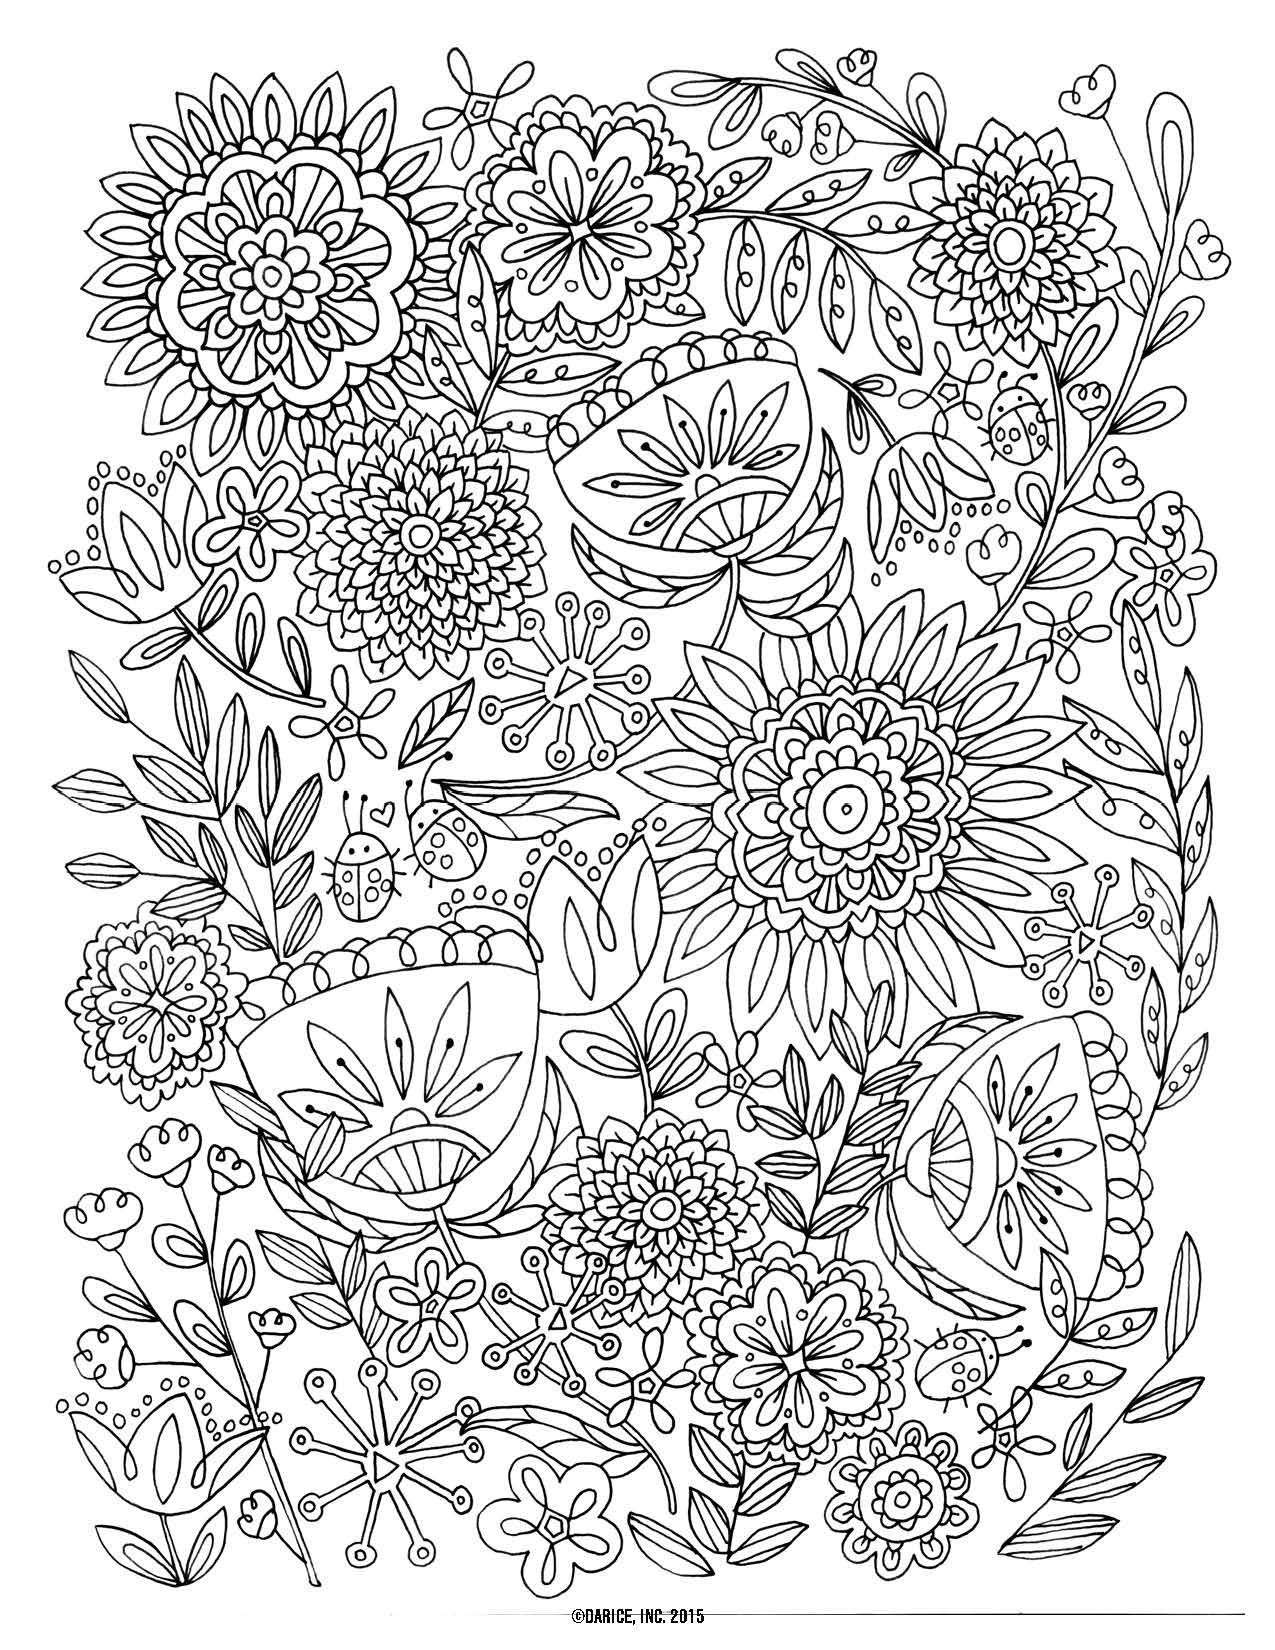 Christmas Mosaic Coloring Pages With Free Tree Ornaments Printable